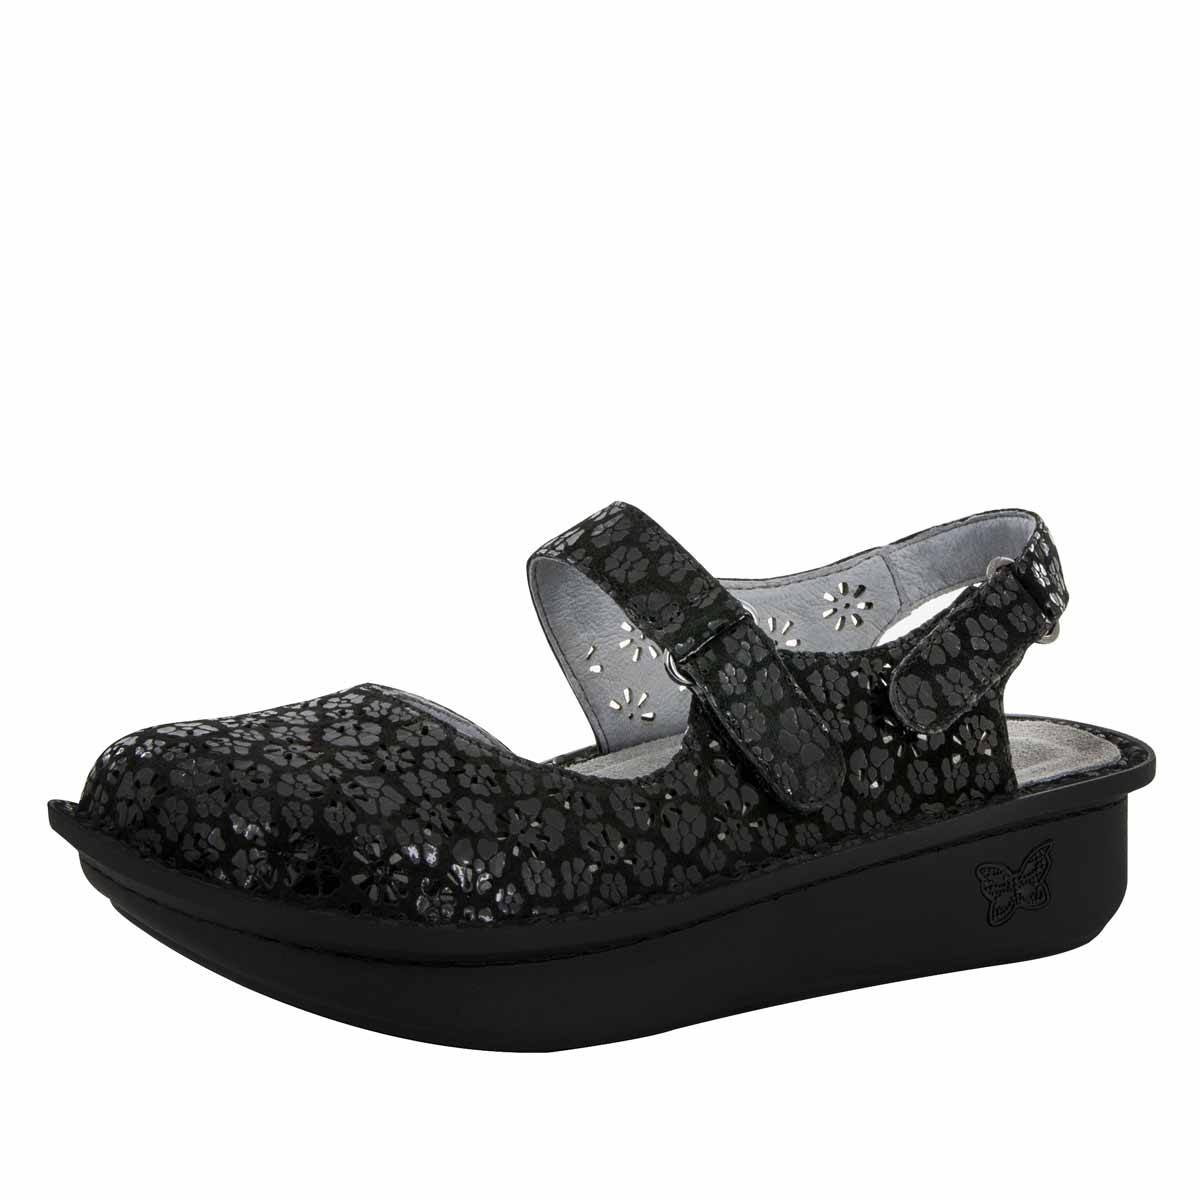 Alegria Jemma Night Poppy Sandal shoes for women. View Larger Photo Email  ...